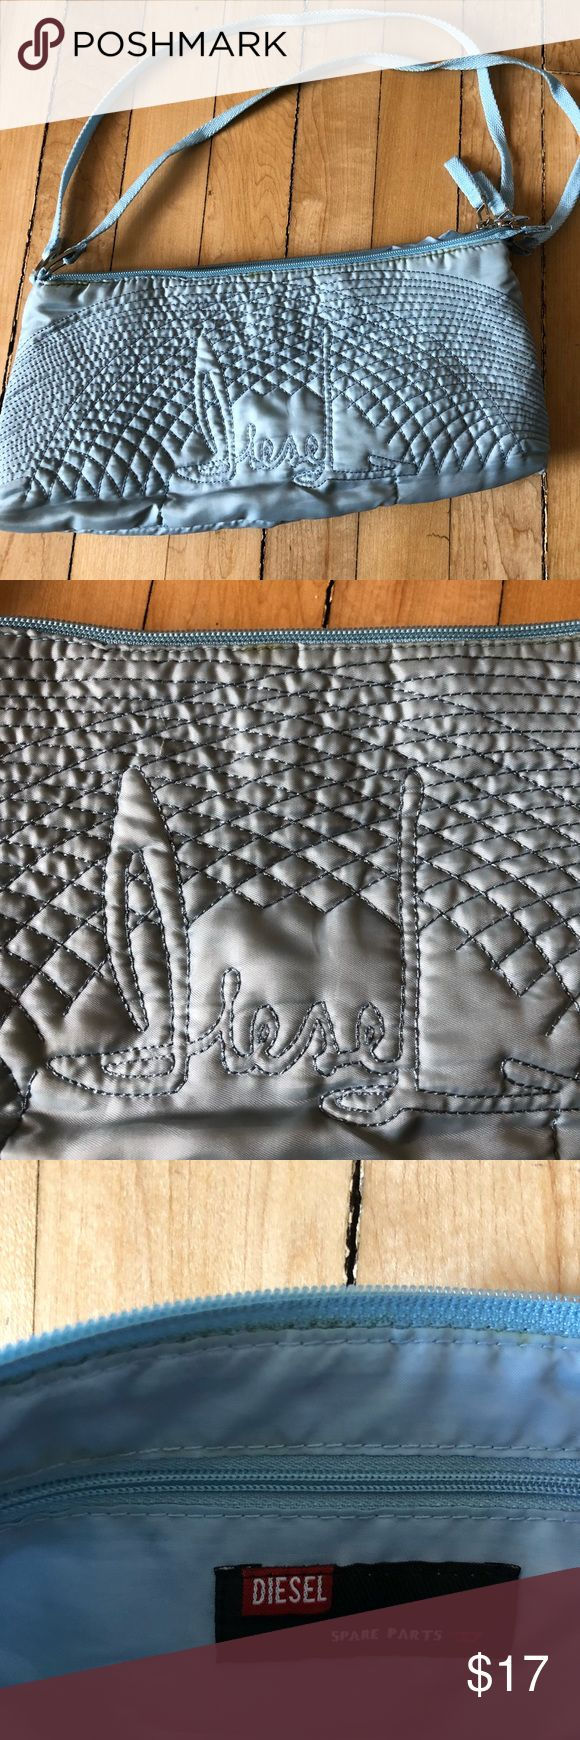 """Diesel handbag purse. Retro and cool! Diesel bag. Double zippers. Baby blue color. """"Diesel"""" embroidered on front. Faint marking across top near zipper. Refer to photos. See last photo for measurements. Definitely a fun bag!! Diesel Bags"""